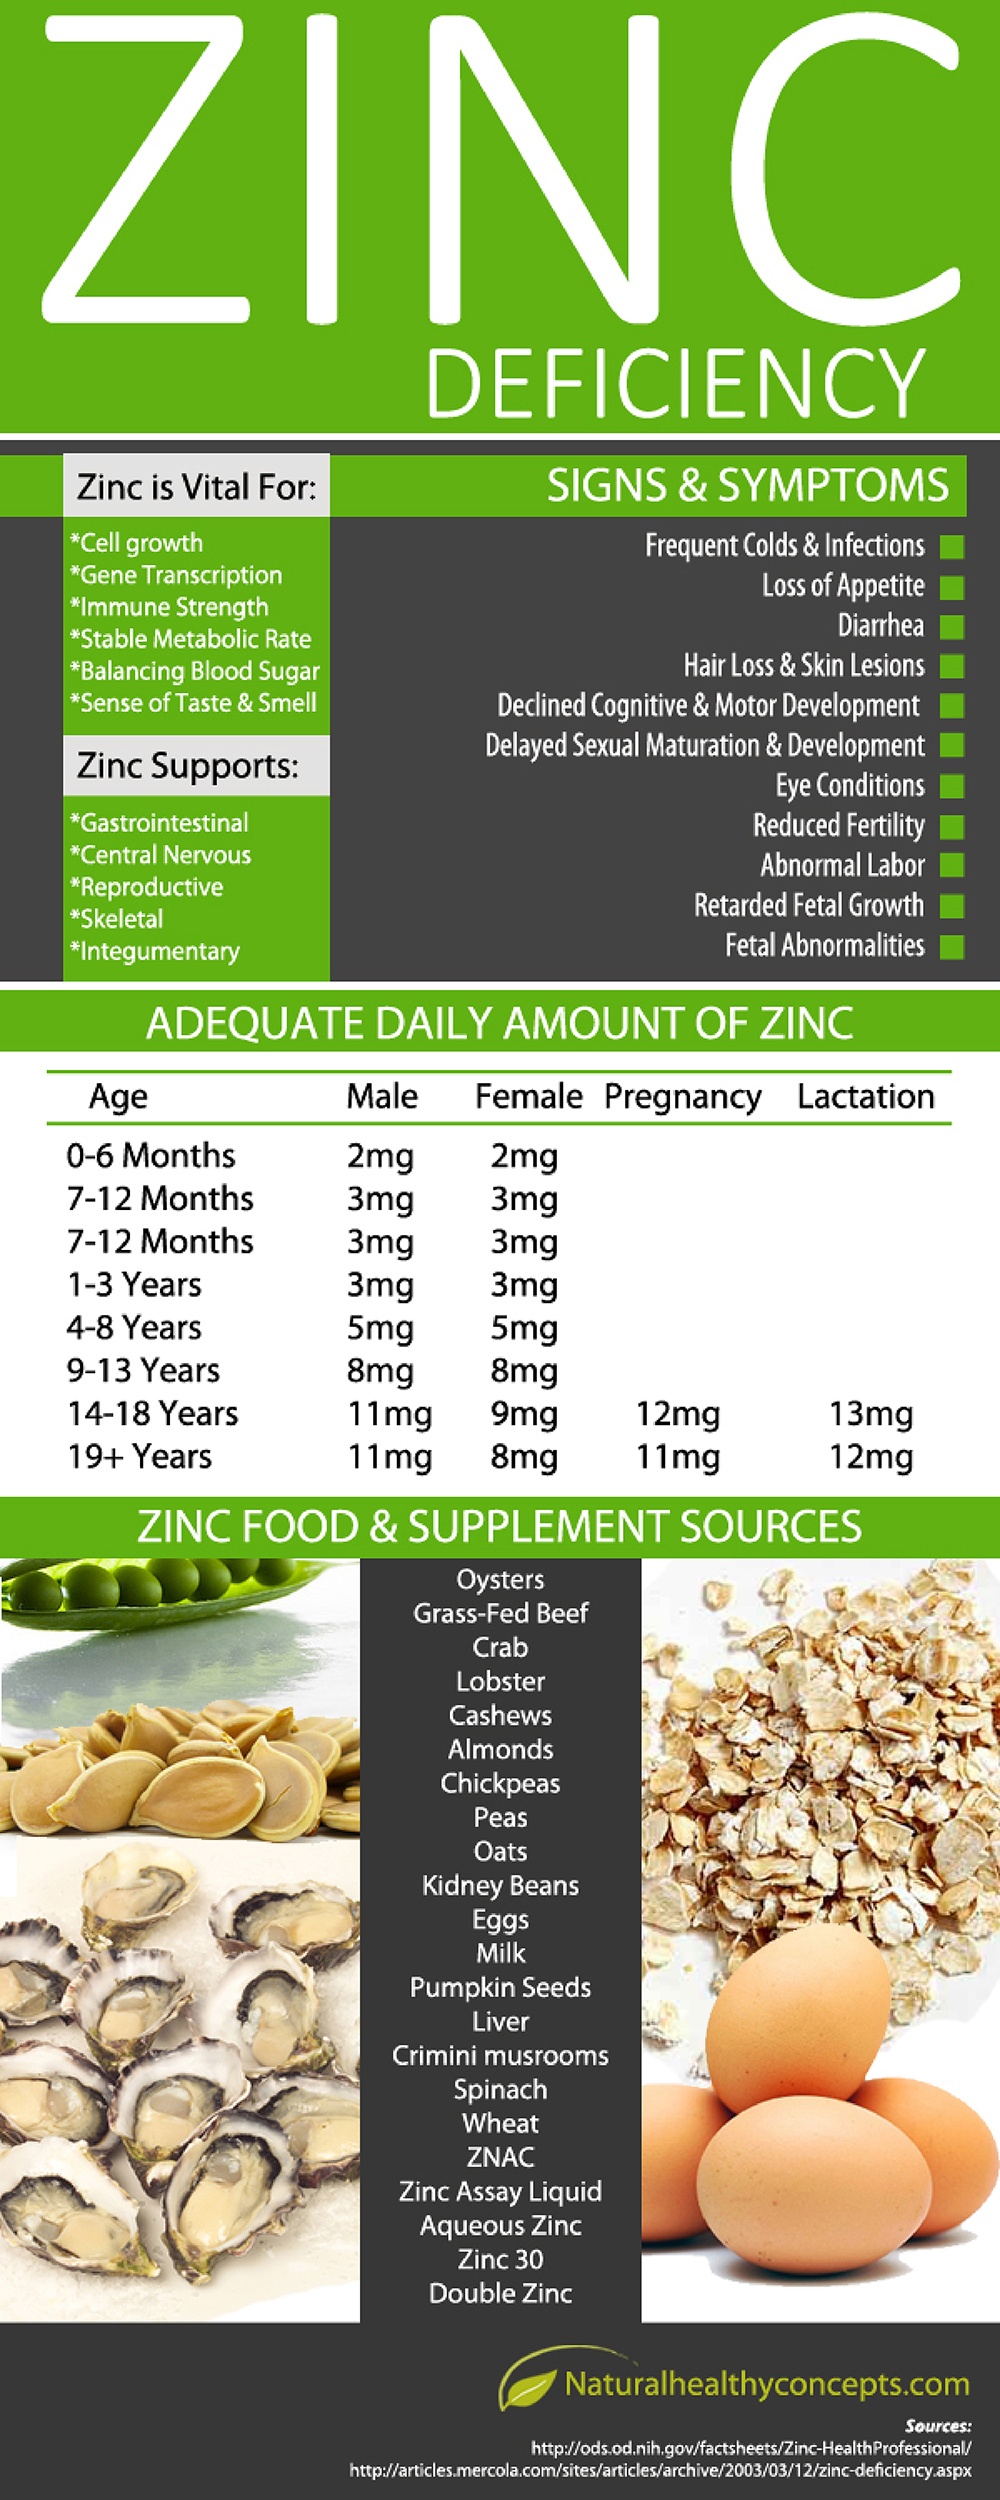 All About Zinc: Why This Mineral Is Important And How To Prevent Its Deficiency